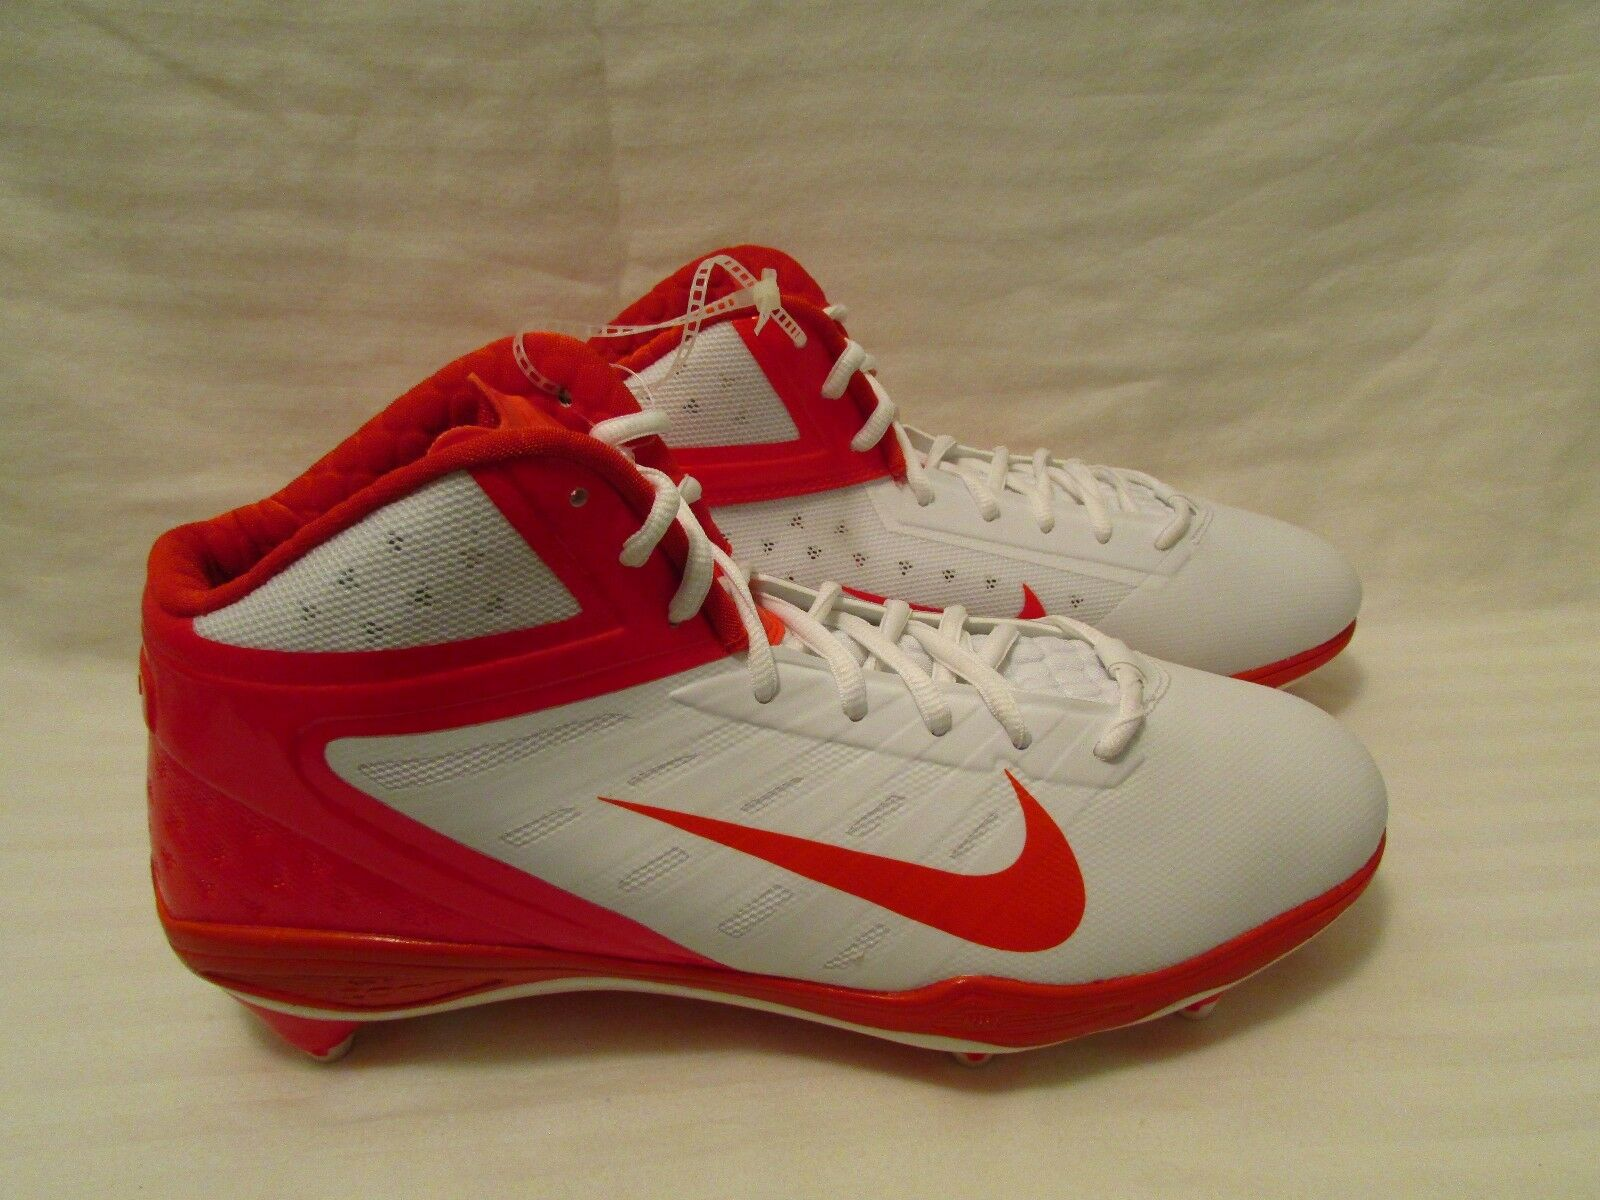 Nike Men Alpha Talon Elite 3/4 D Football Orange Cleats Reg120 Sz 12 Orange Football 526208 180 589e57